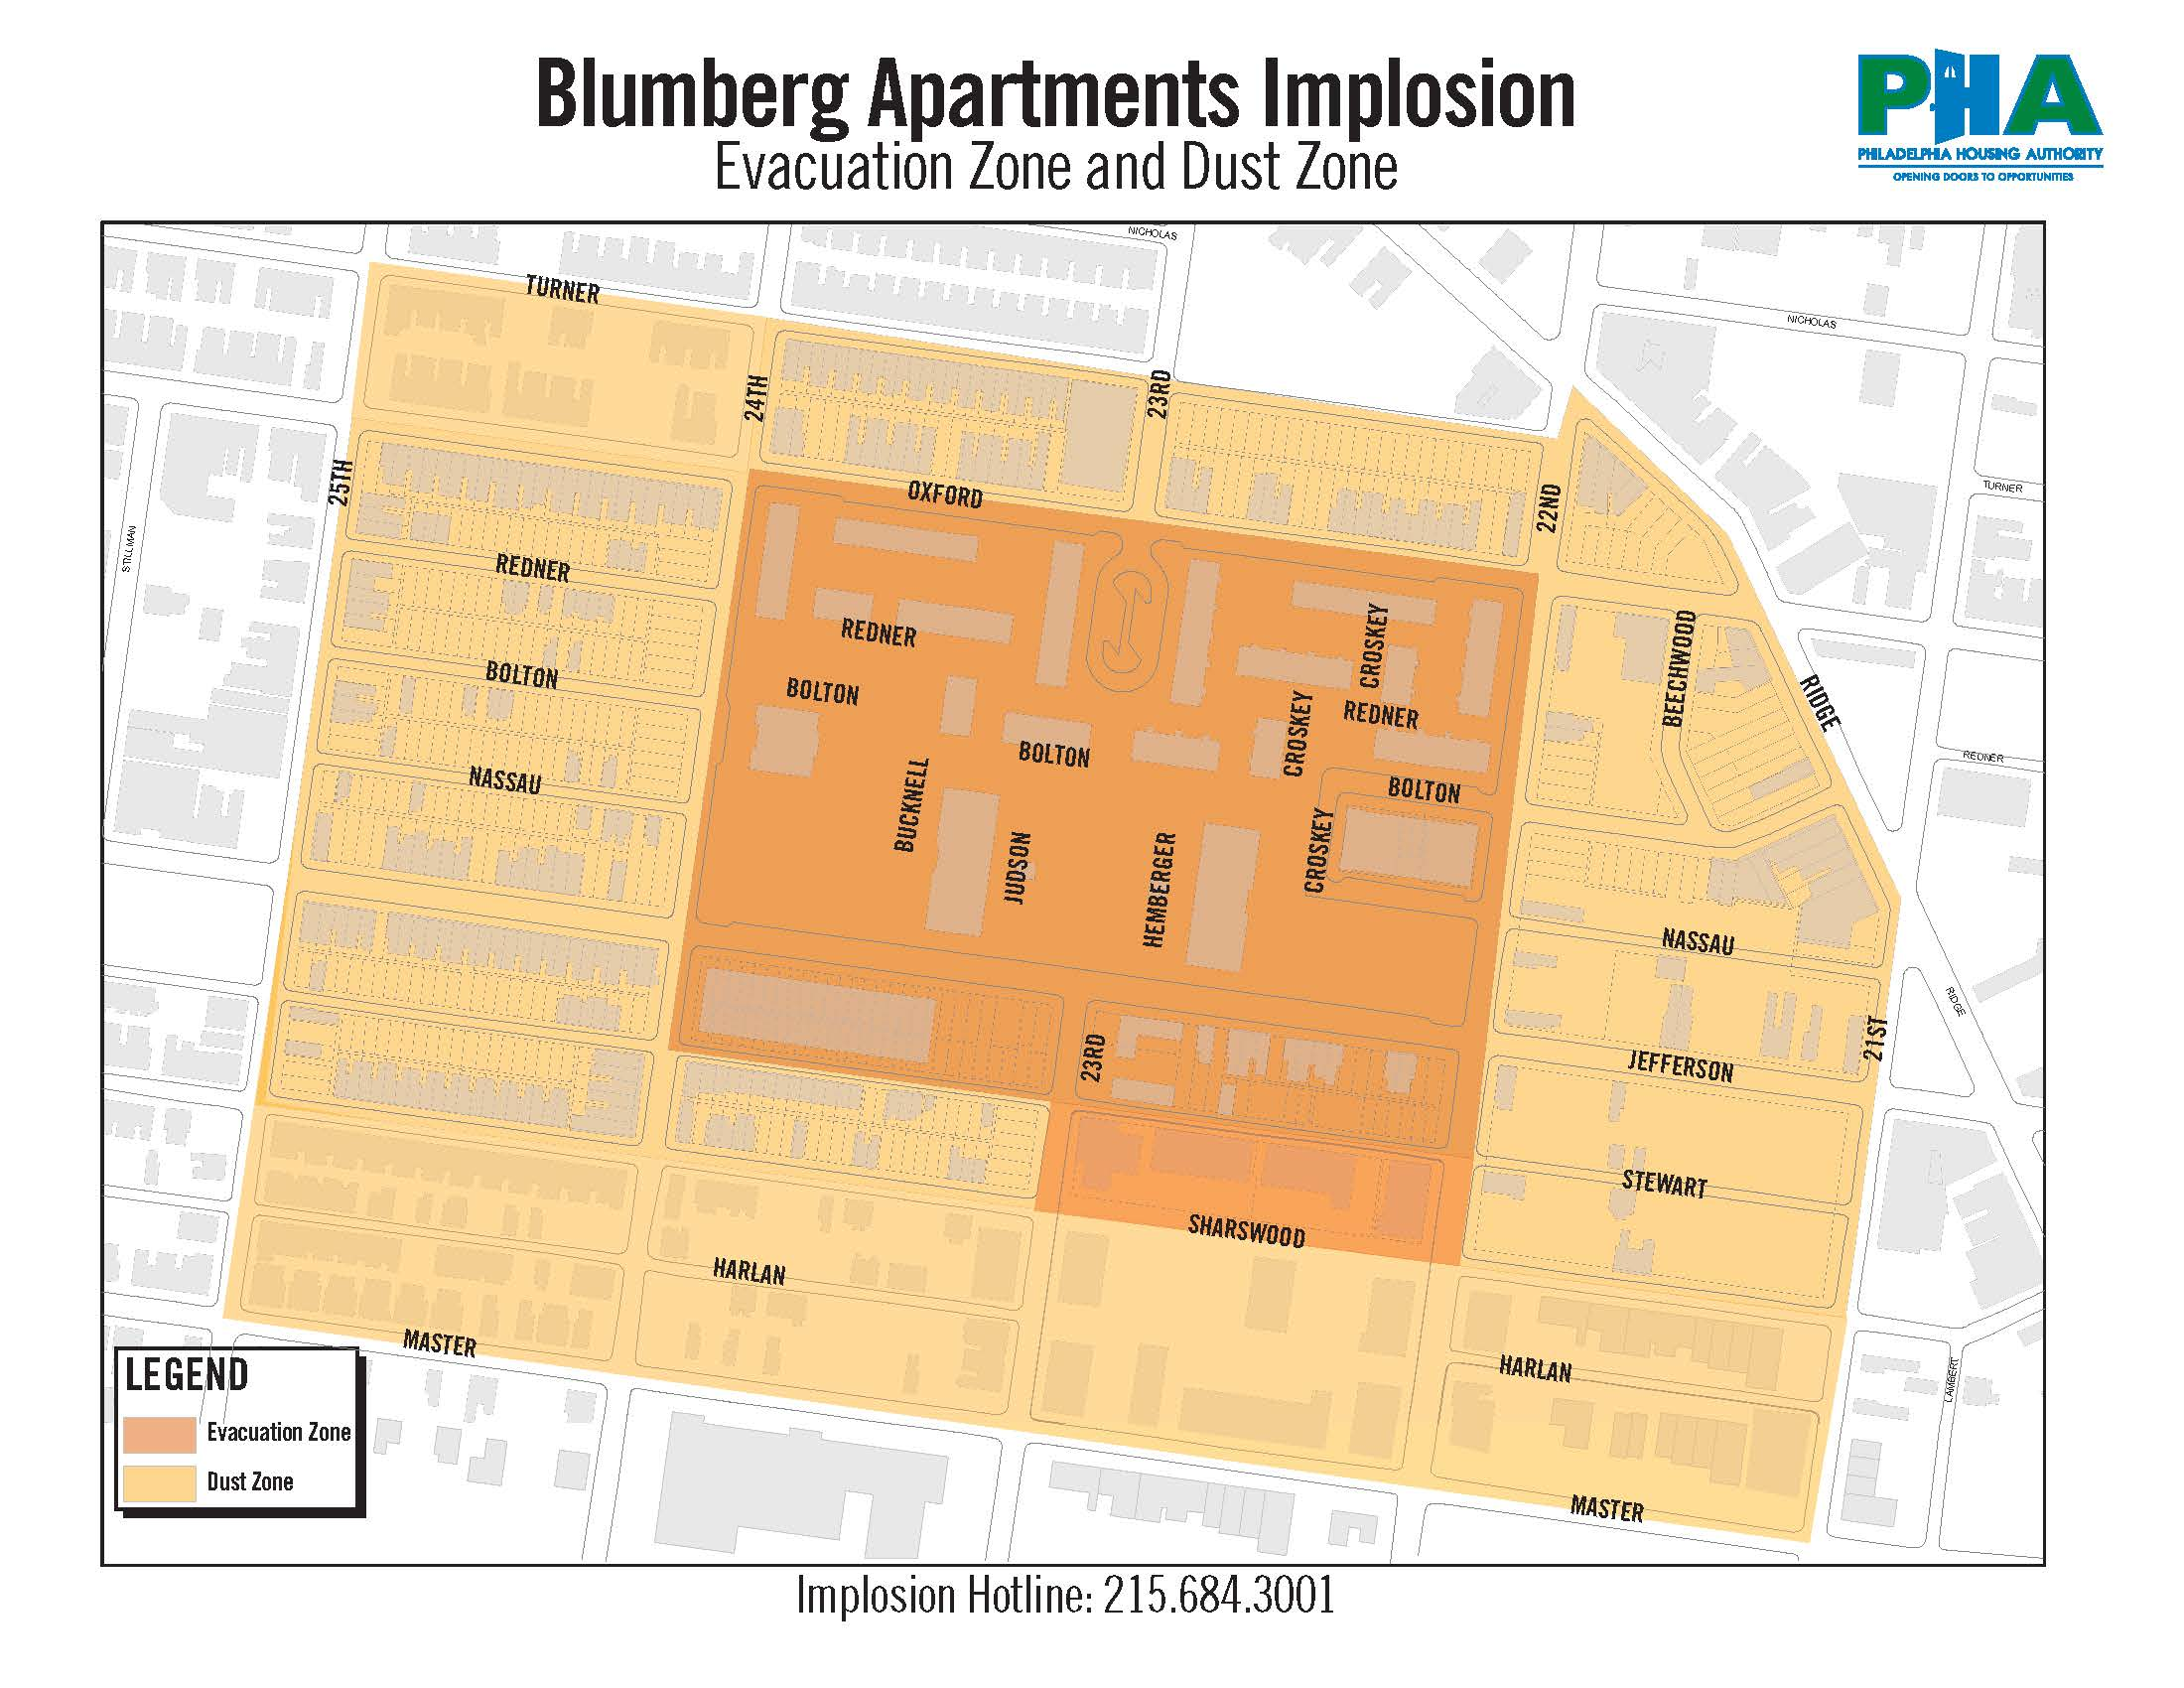 2016-Blumberg Implosion - Map3 (2).jpg